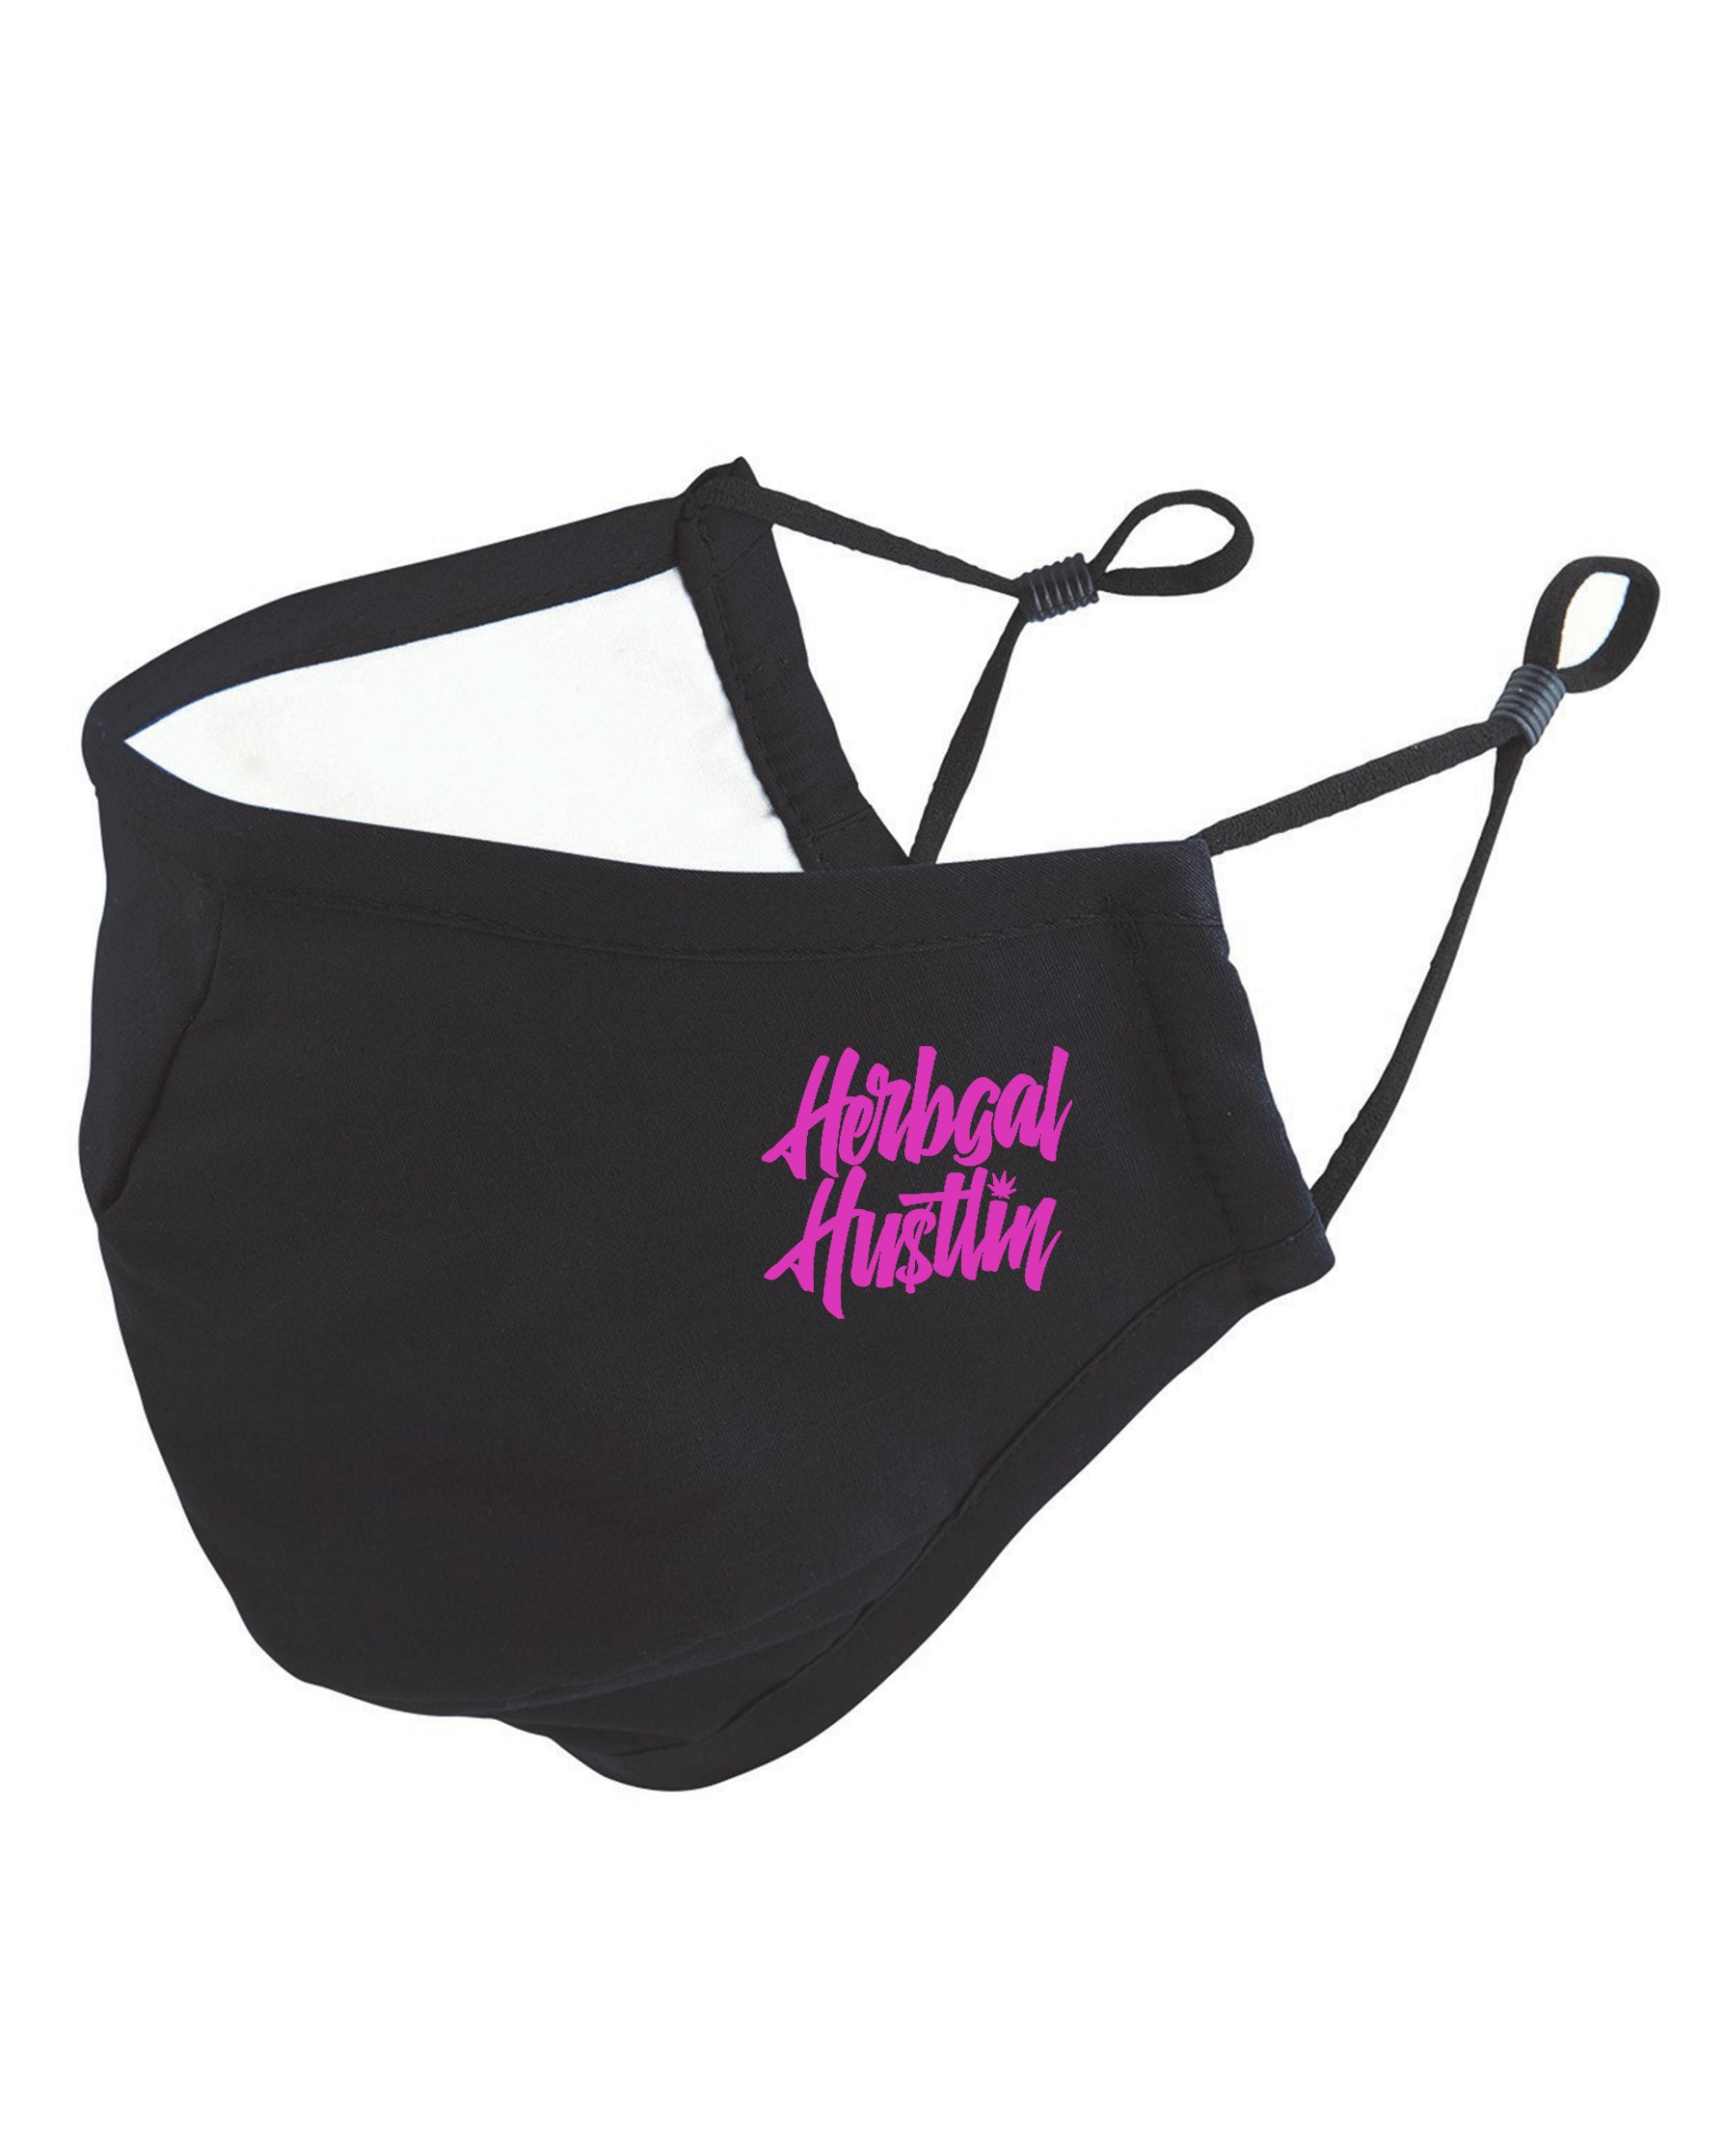 Herbgal Hustlin Script 3 Layer Mask - Black/Pink - Front